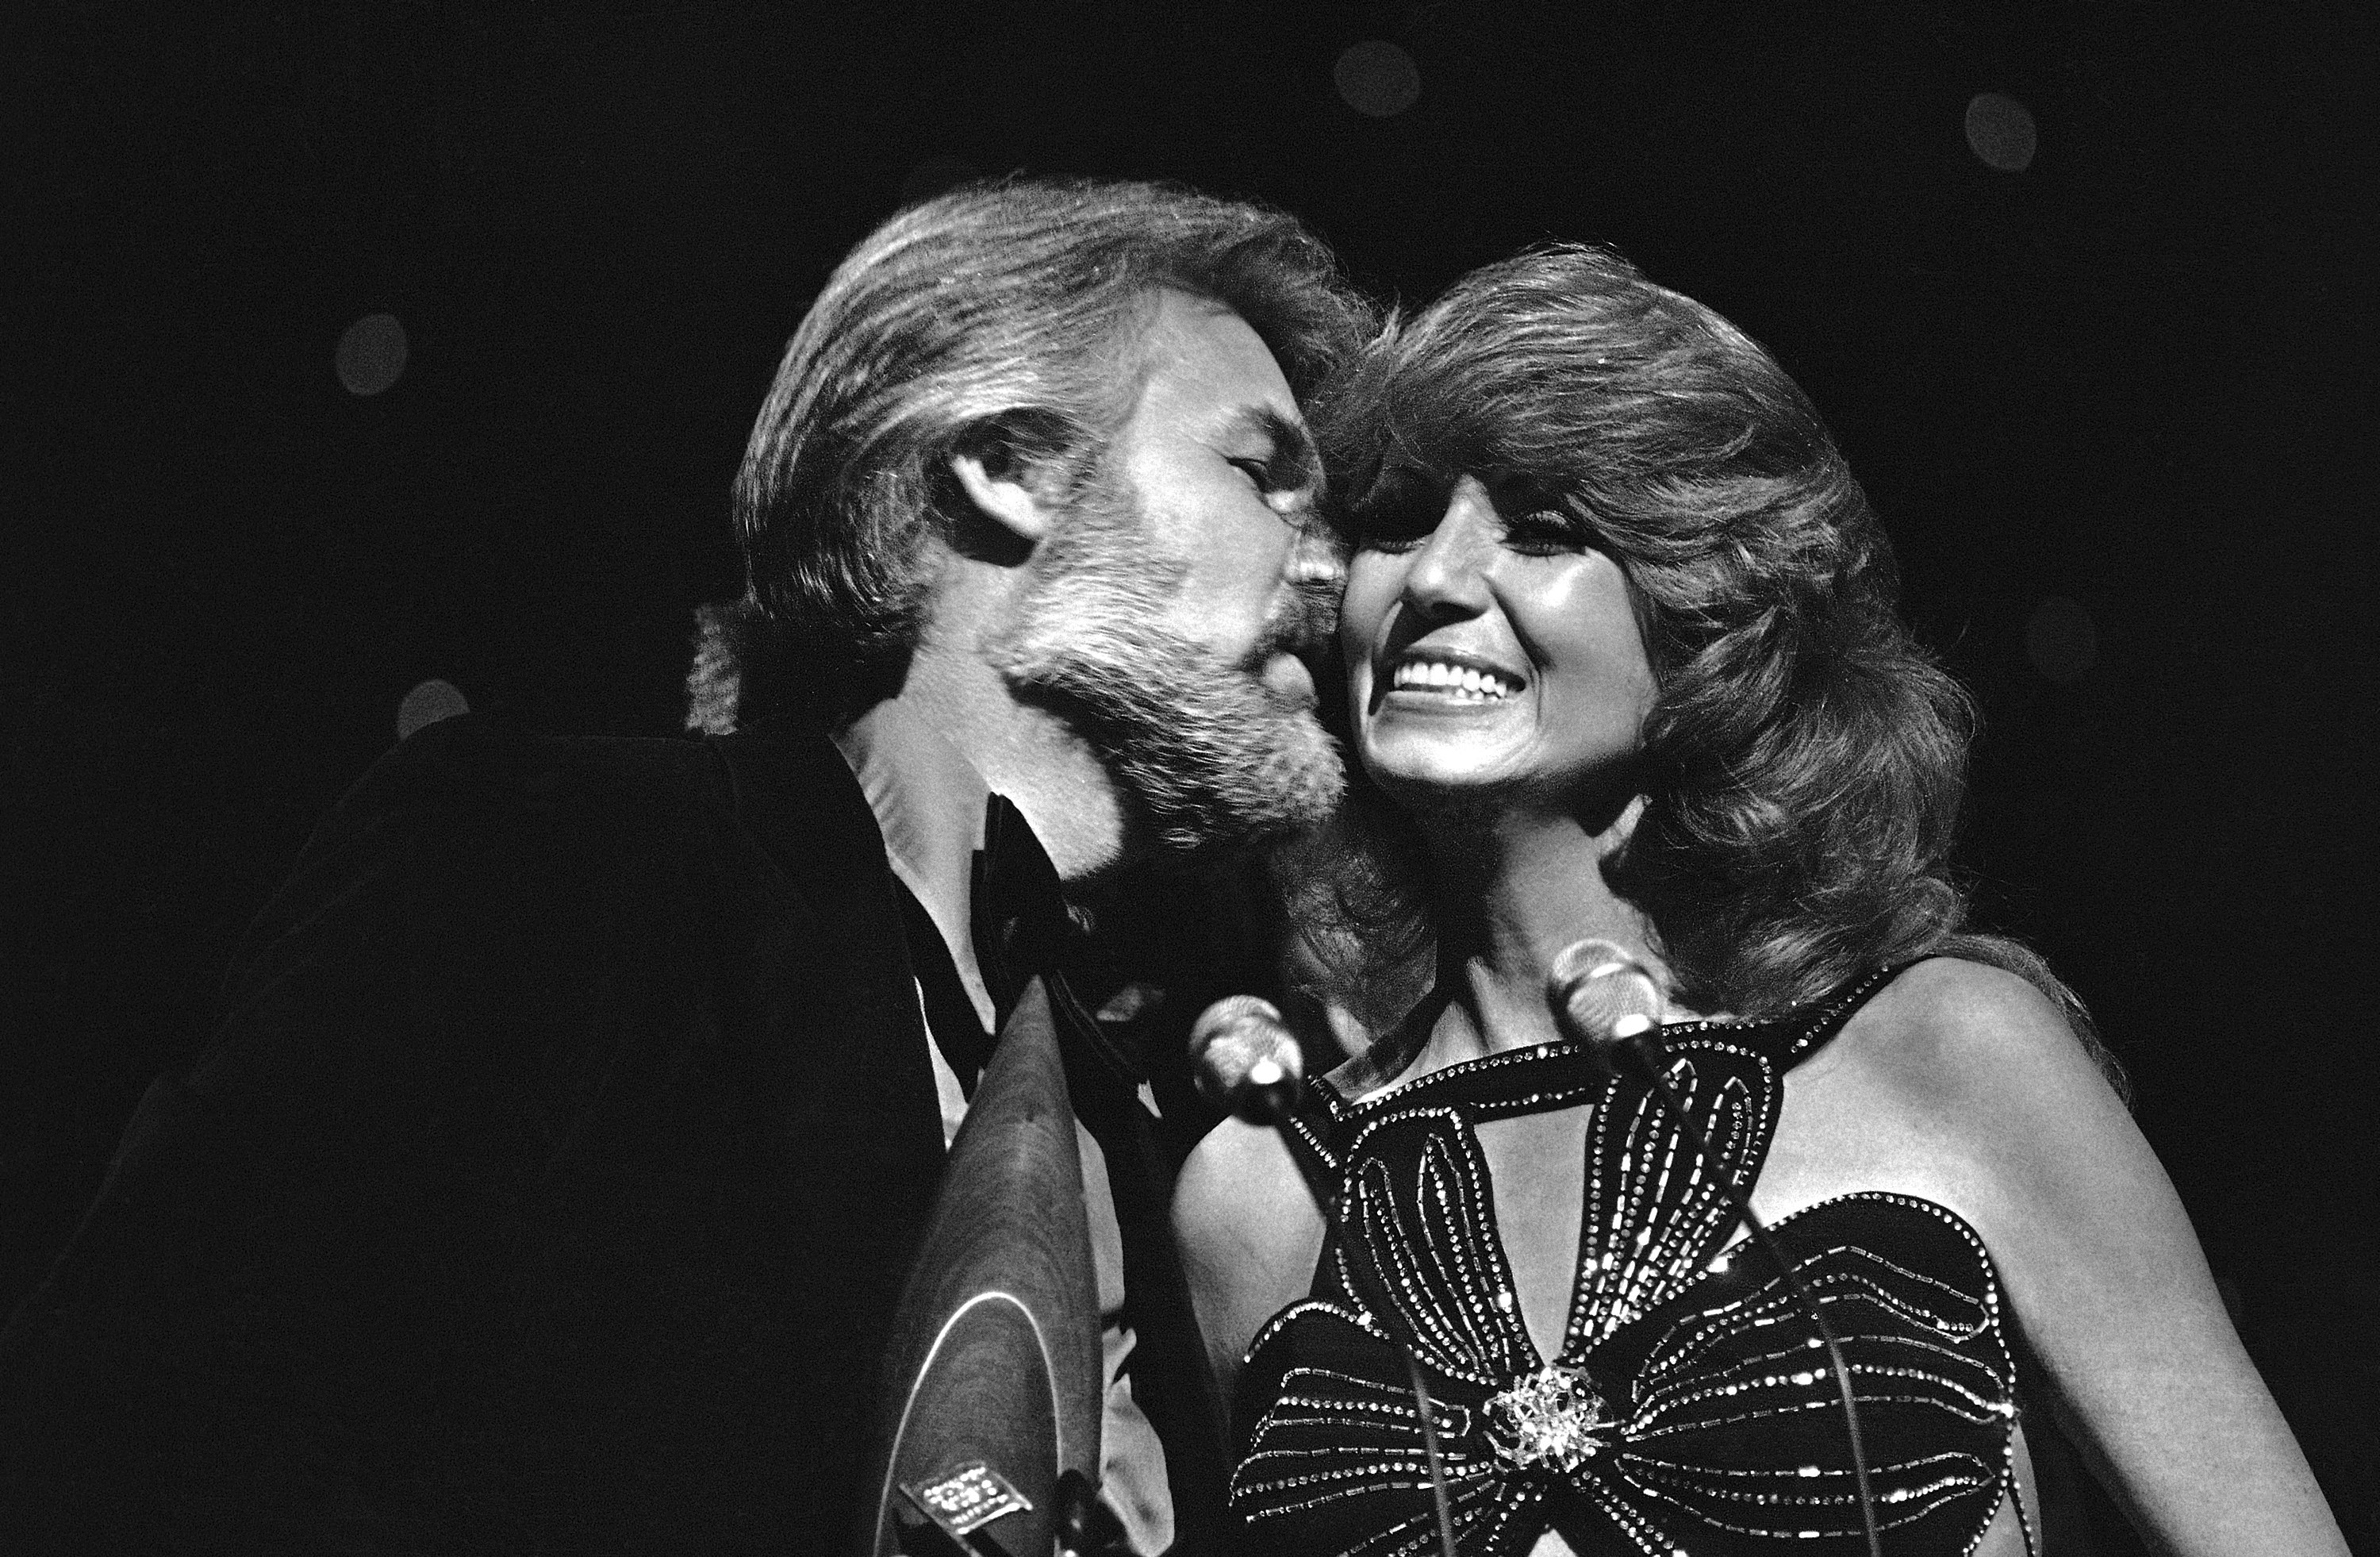 Country music singers Kenny Rogers and Dottie West appear at the CMA Awards in Nashville, 1978 - Kenny Rogers Retrospective